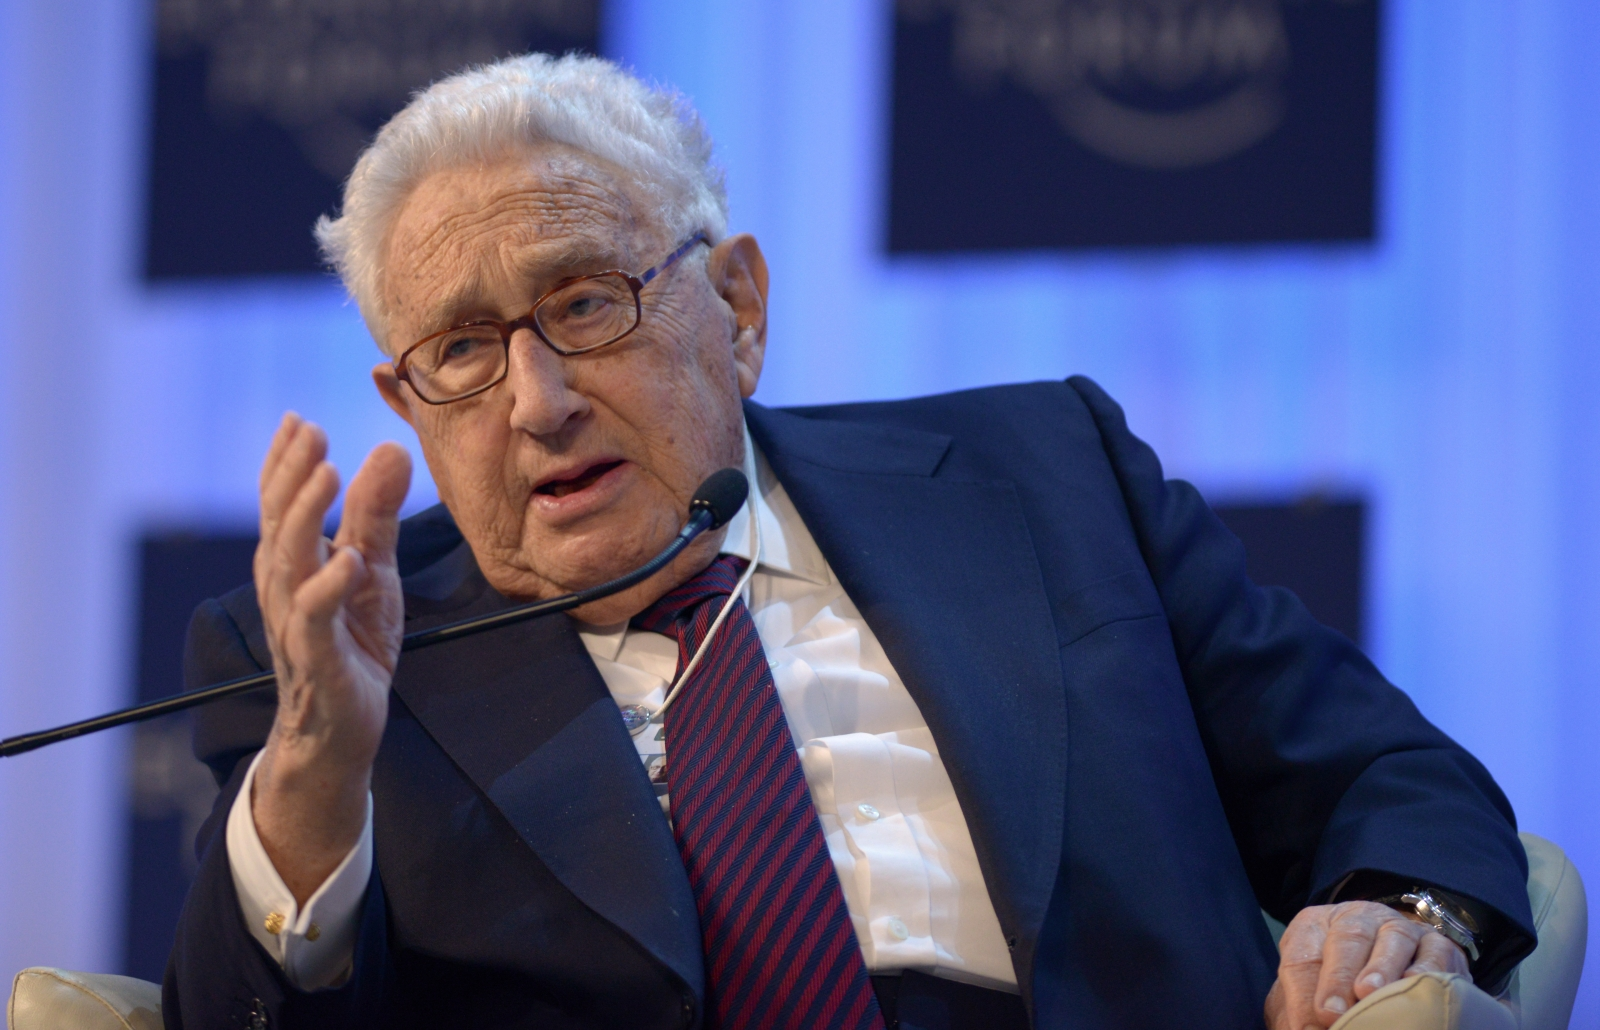 Kissinger urges stronger military response to Isis militants. (Getty)